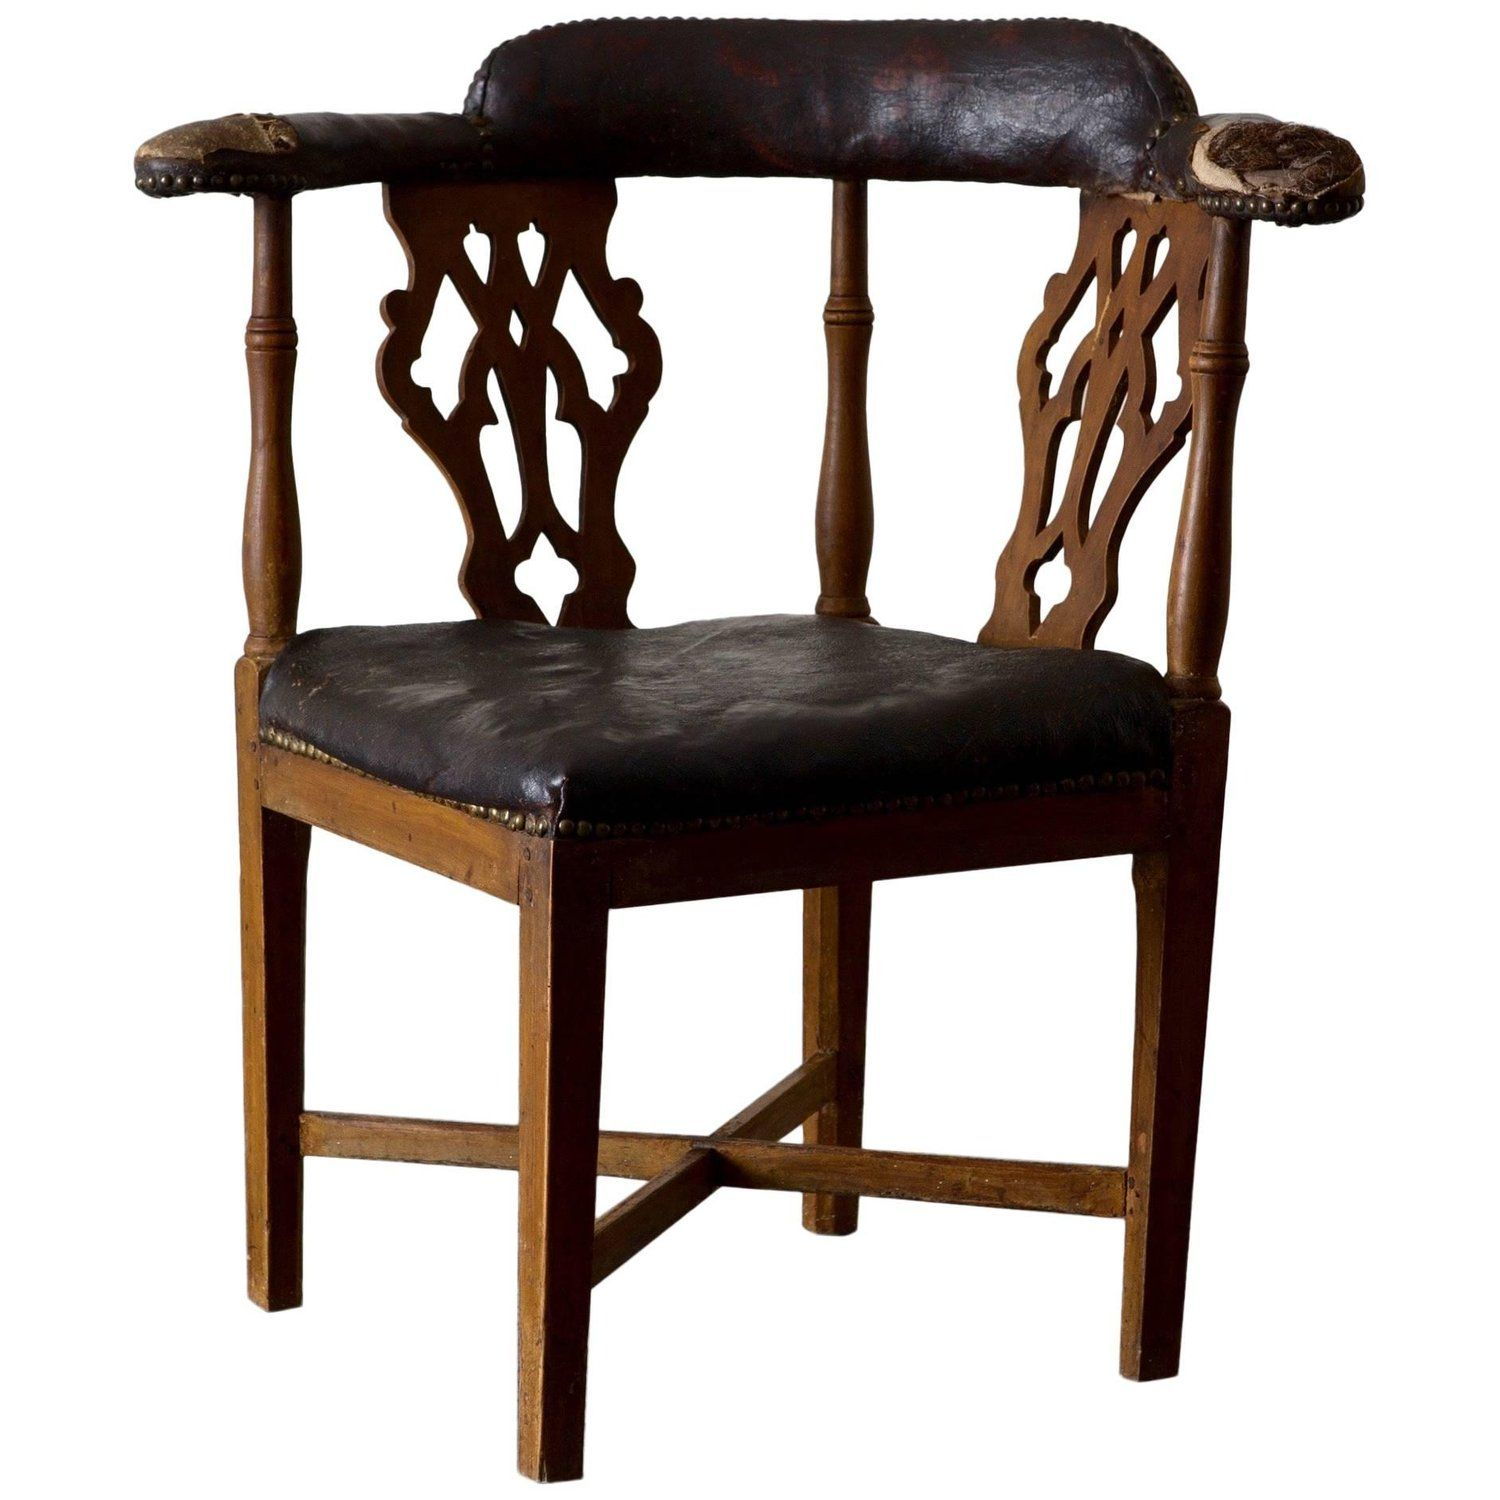 Chair corner swedish leather rustic sweden chair